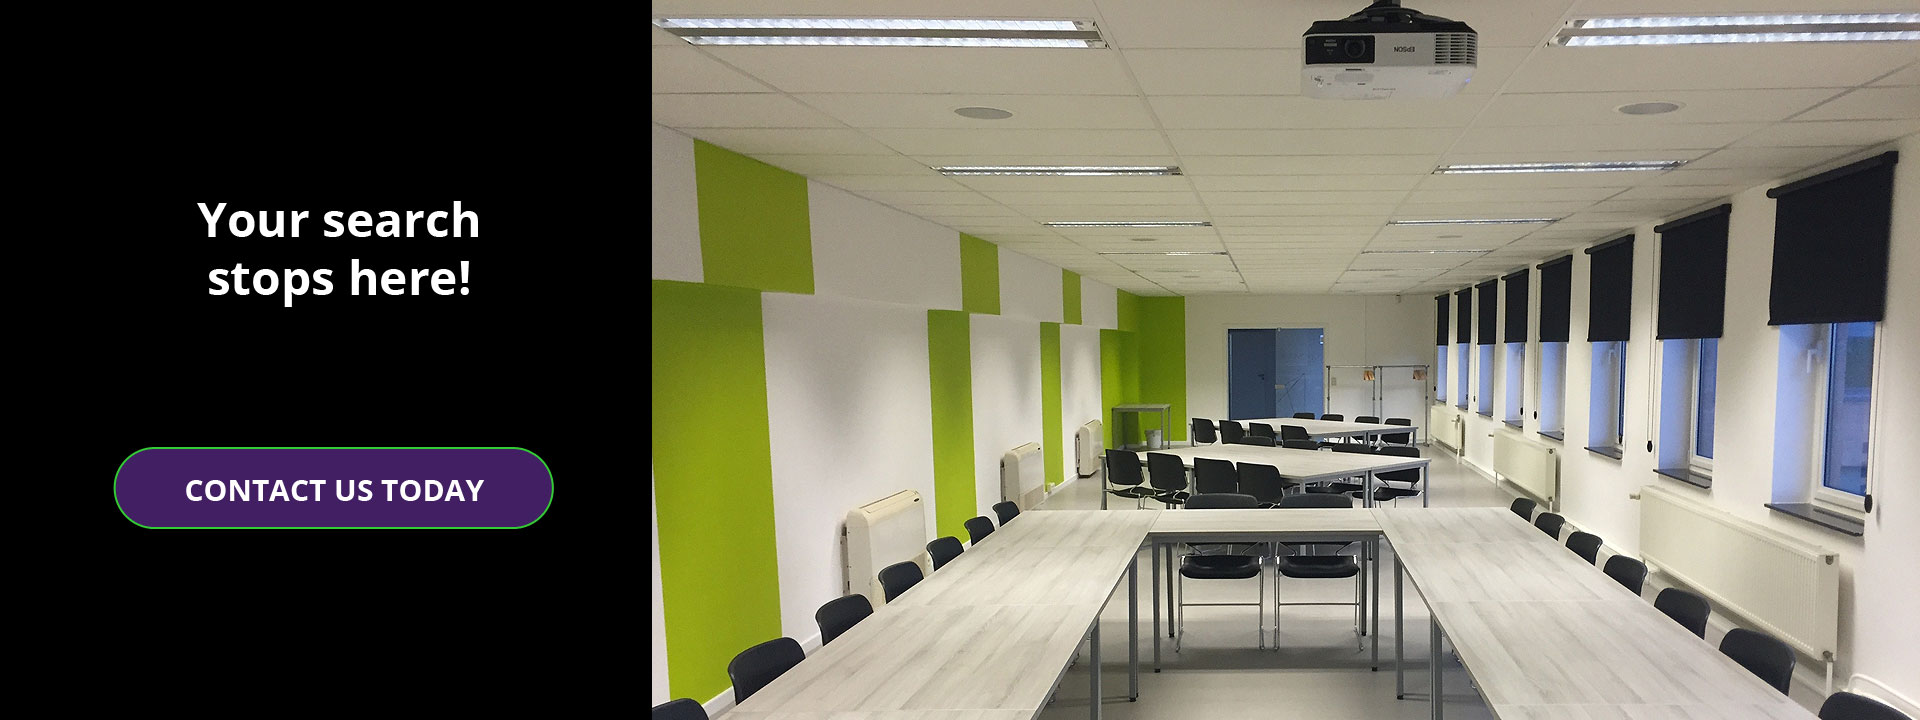 Large corporate conference room